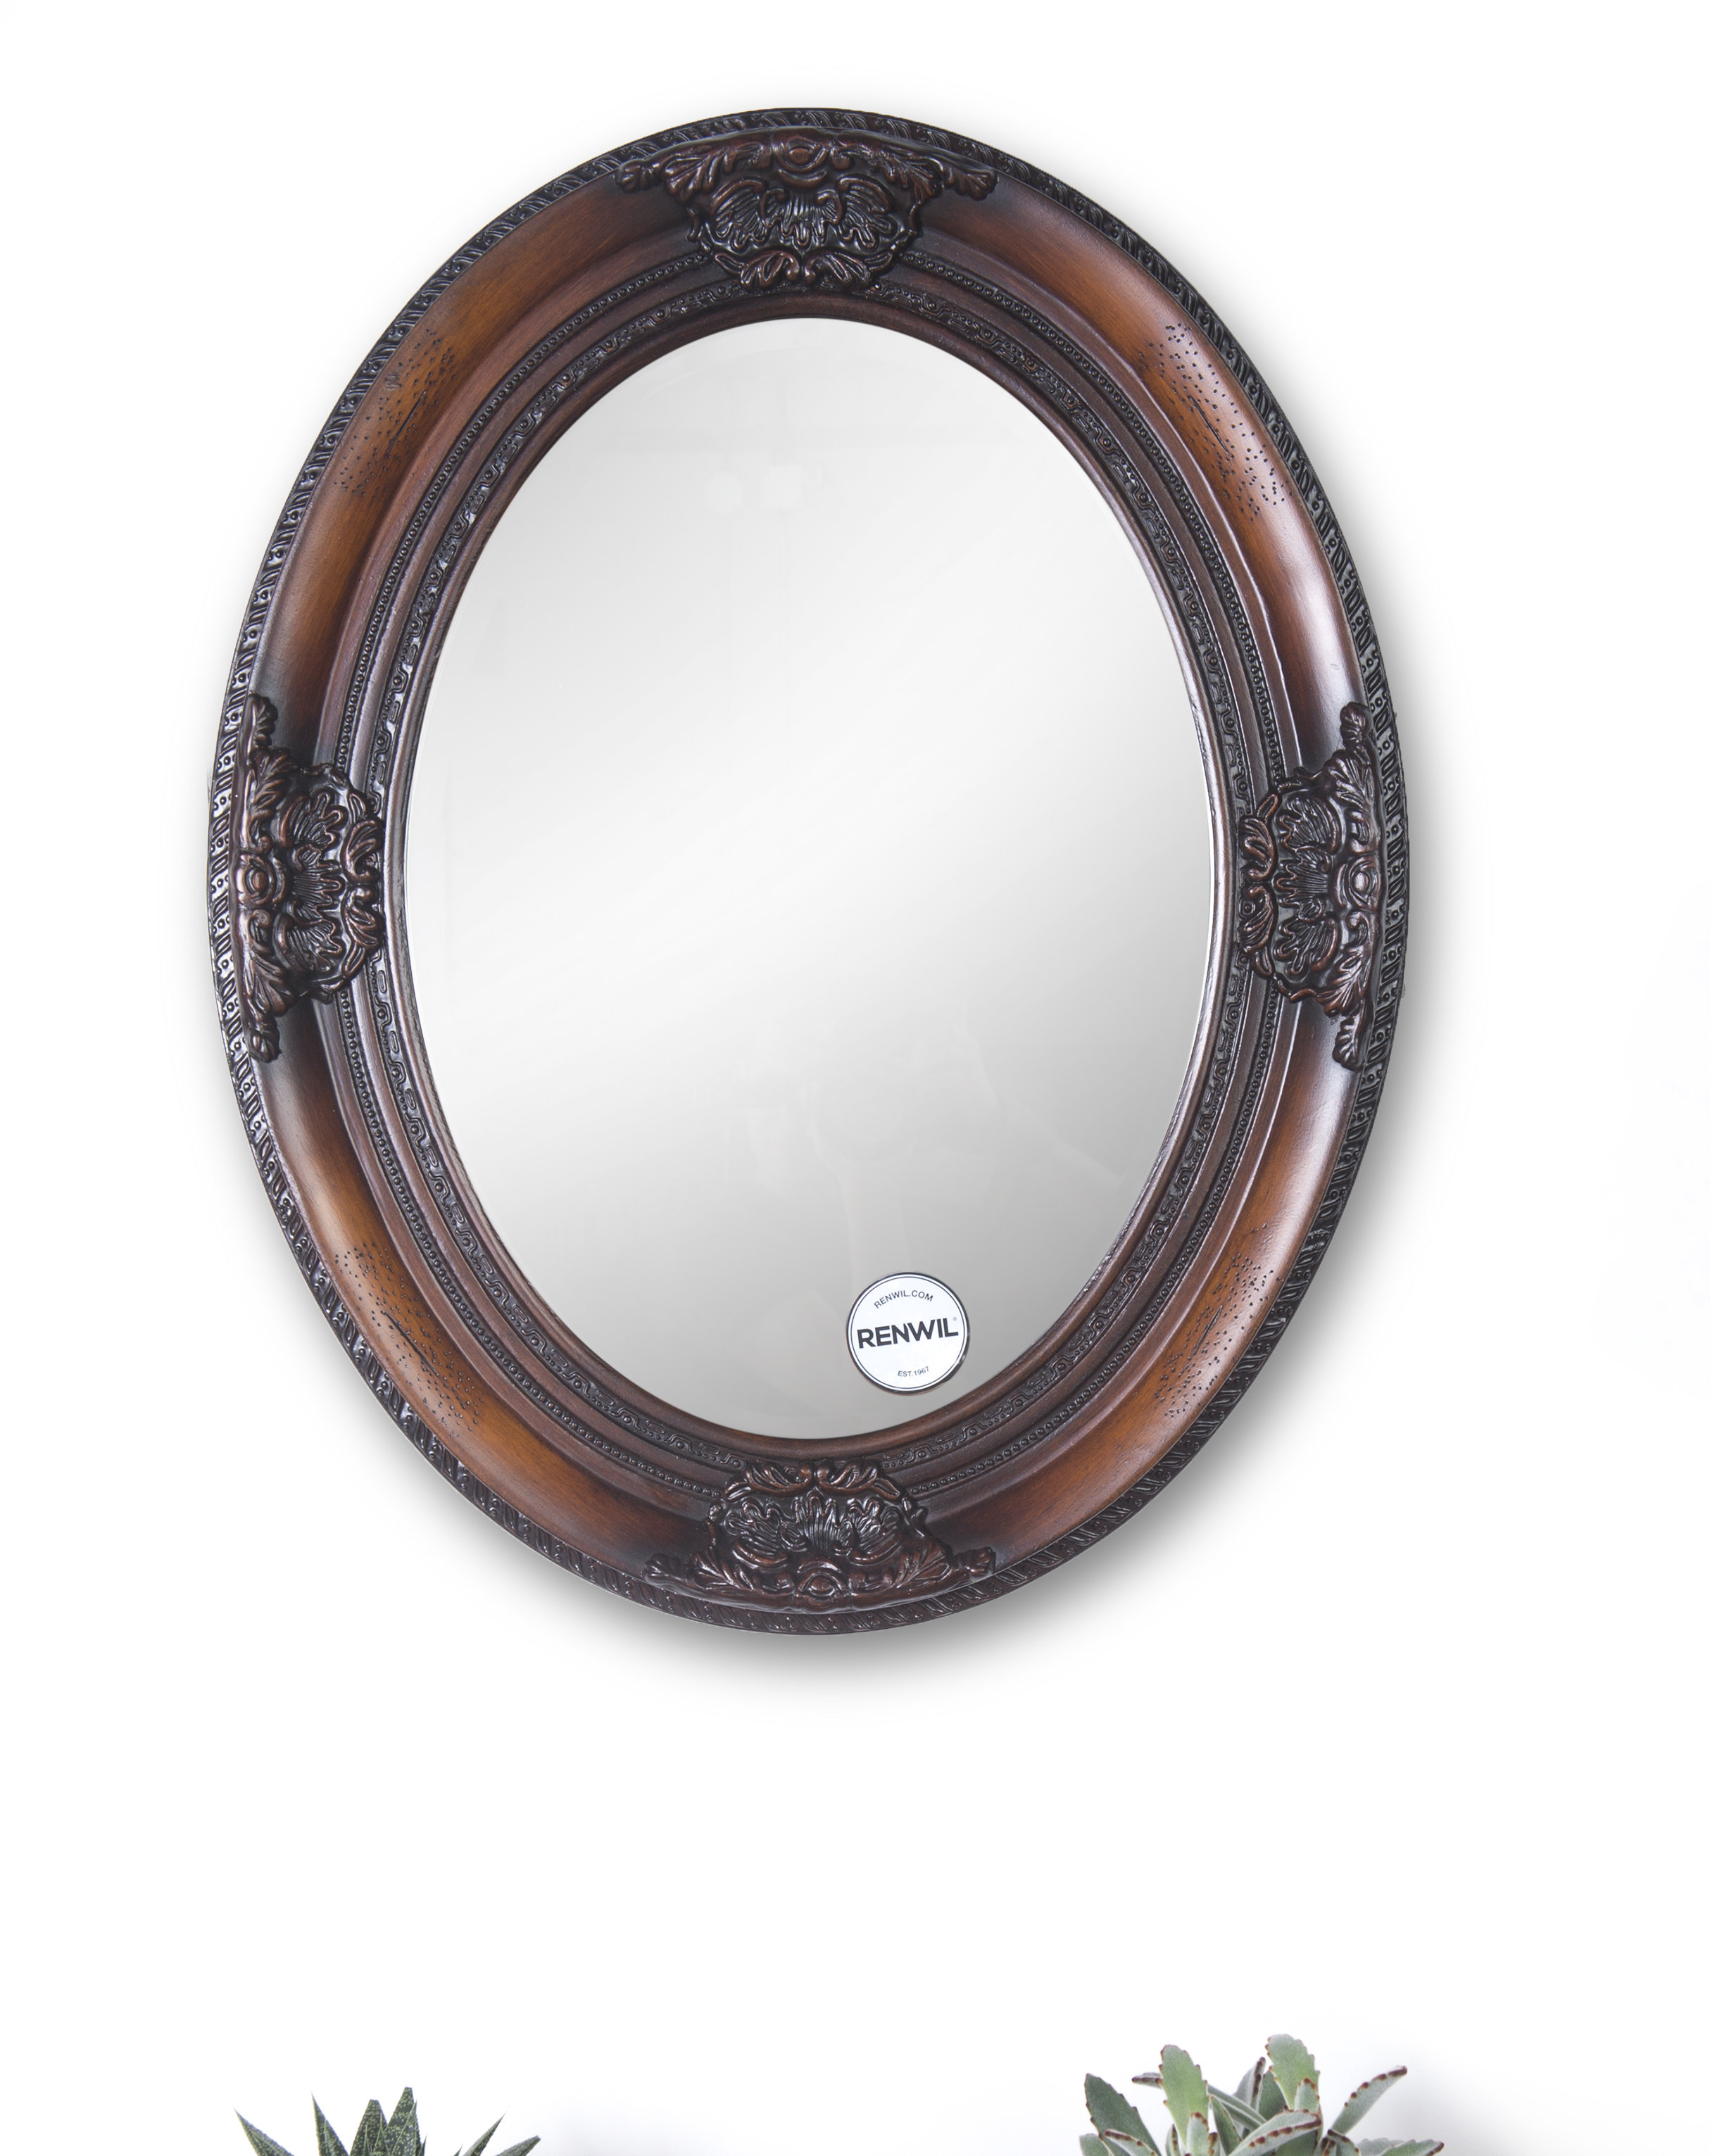 Oval Wood Wall Mirrors You'll Love In 2019 | Wayfair Inside Pfister Oval Wood Wall Mirrors (Image 14 of 20)